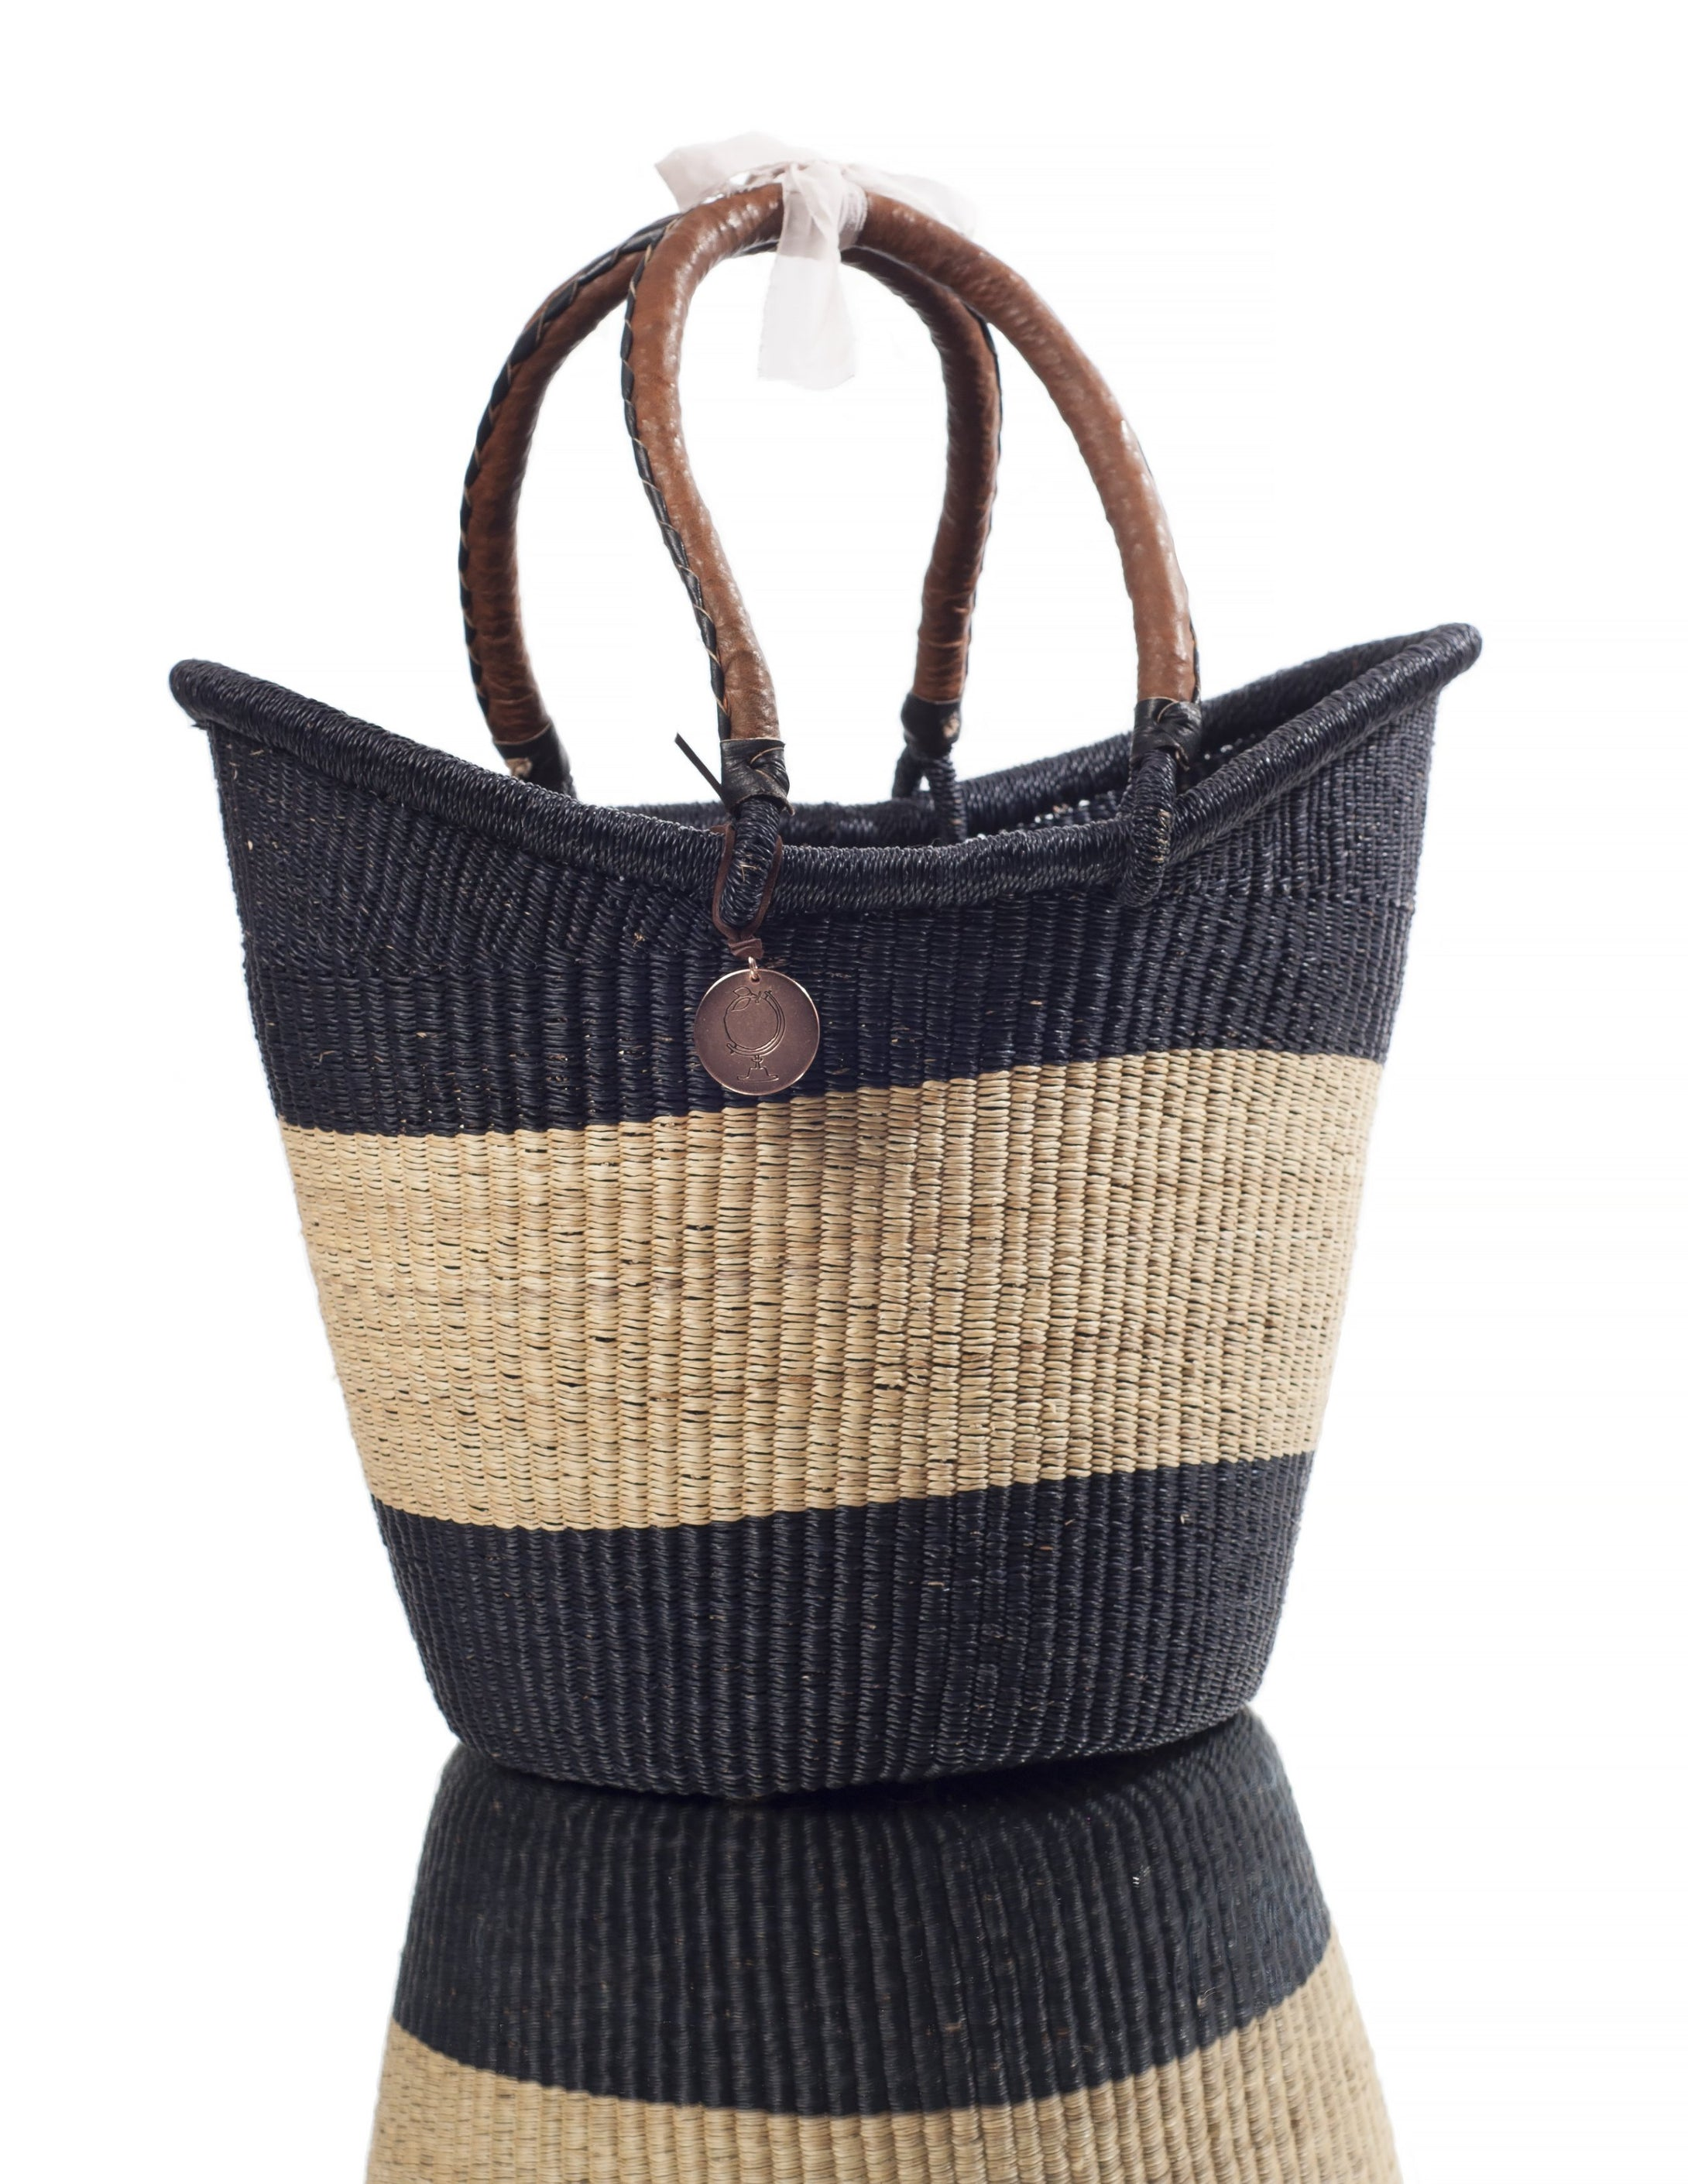 large baskets with handles in black